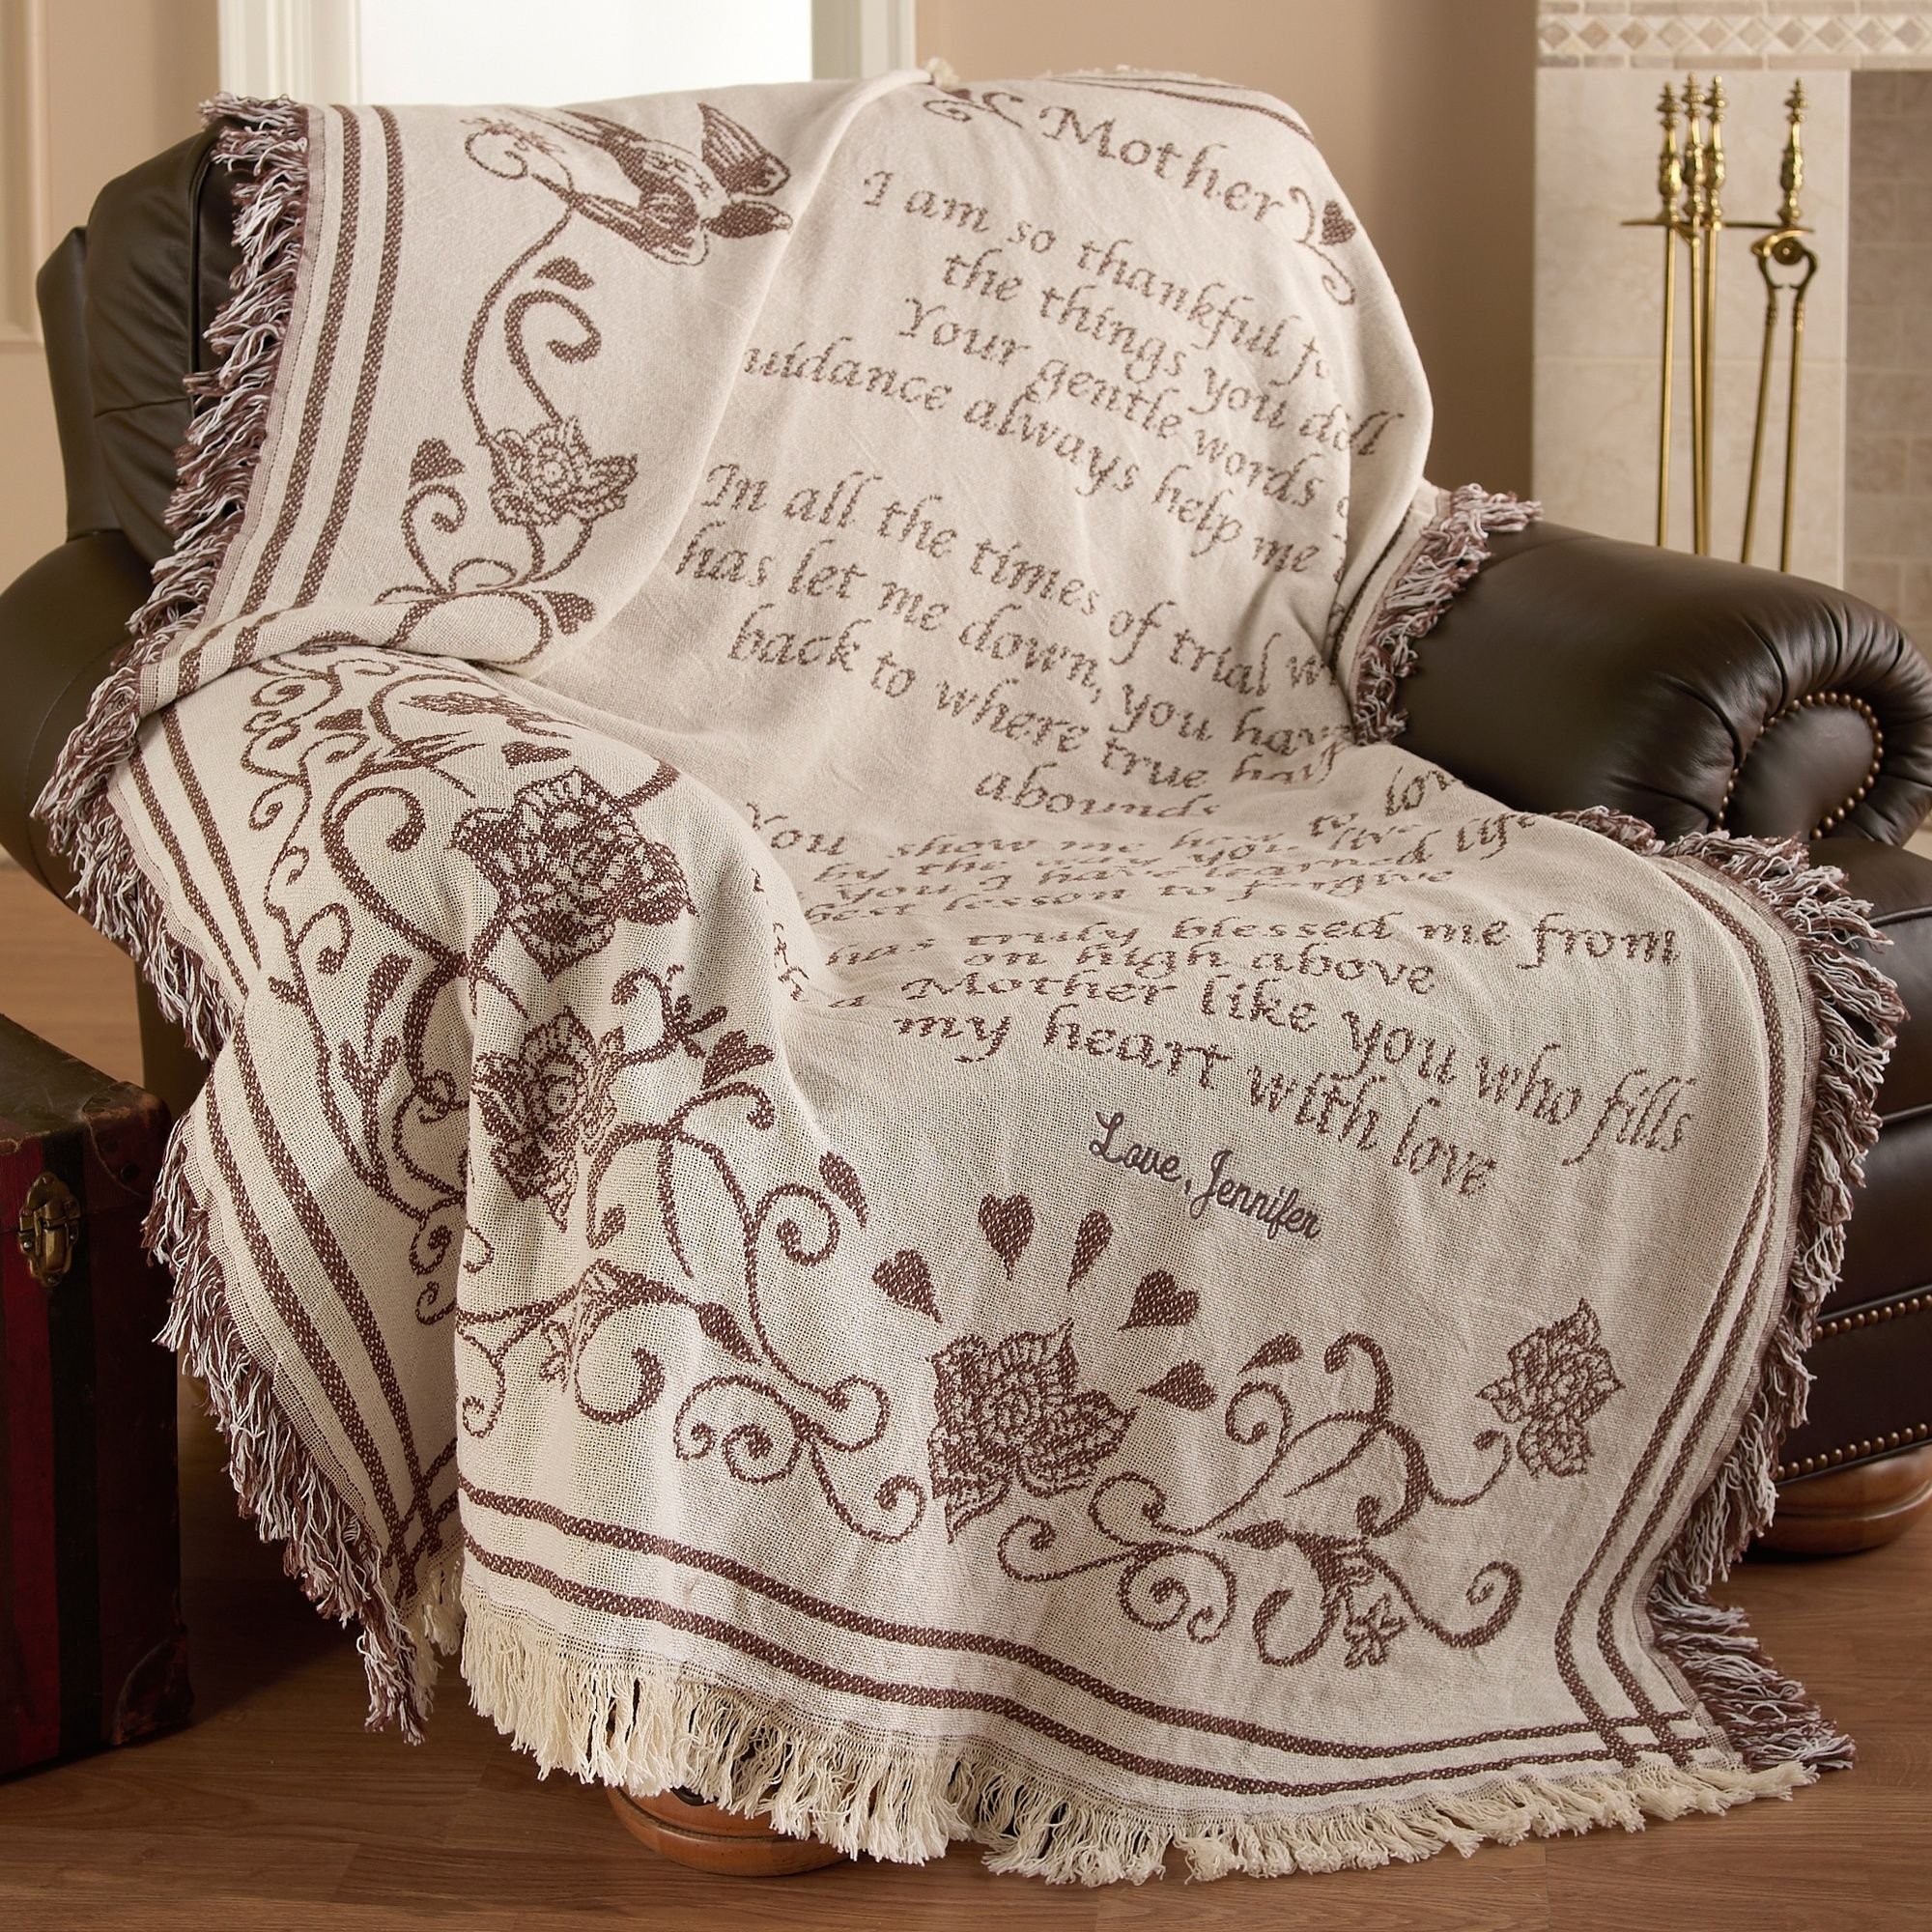 Personalized Mothers Woven Blanket